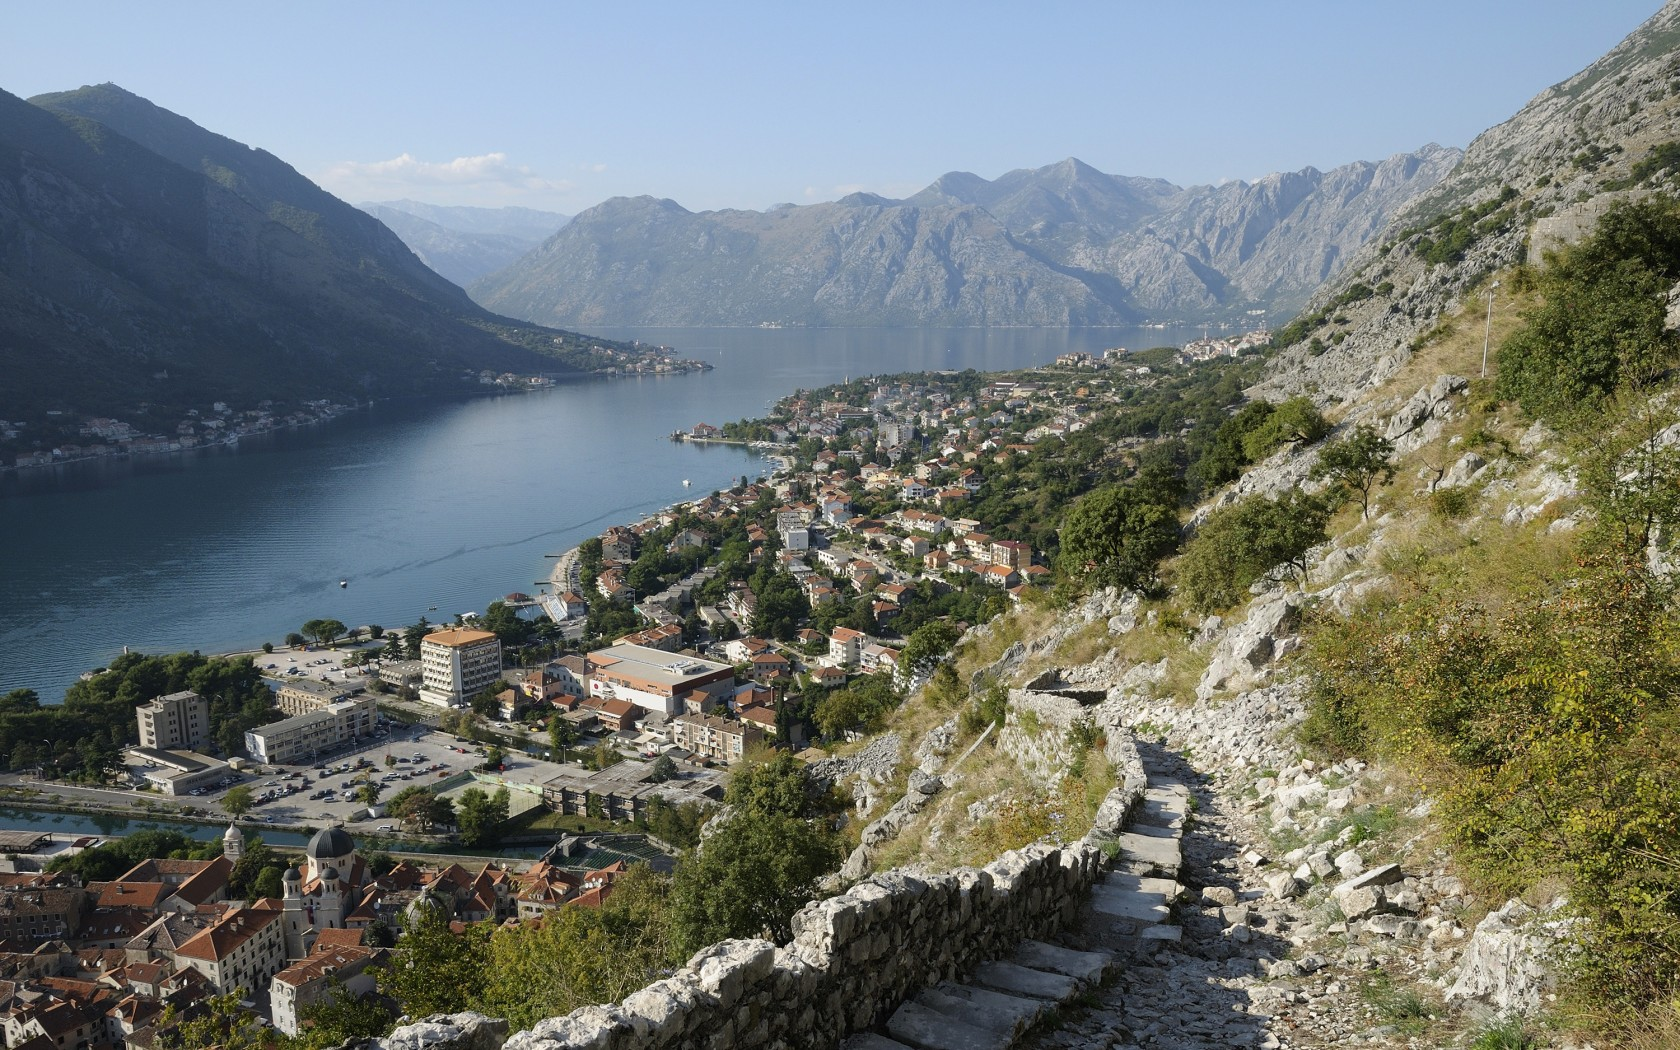 Edited-9.View-from-fortress-in-Kotor-Montengro817-264122-1680x1050